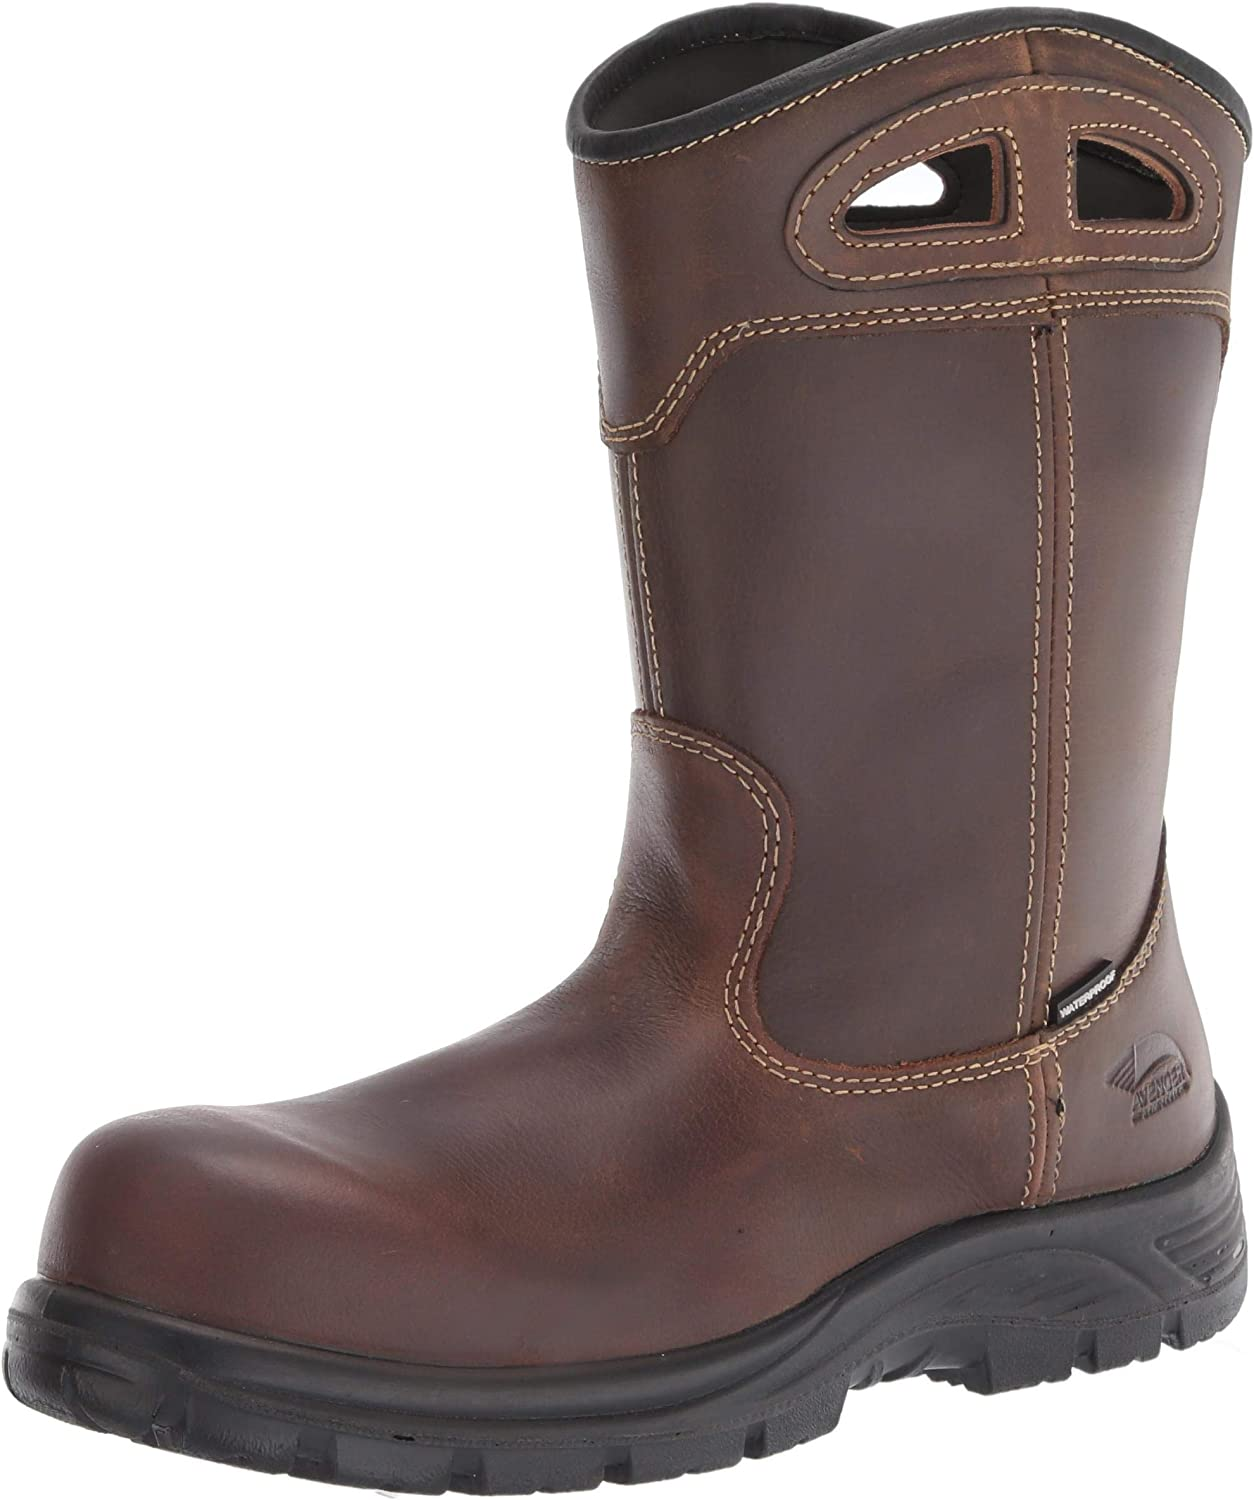 FSI FOOTWEAR SPECIALTIES INTERNATIONAL Max 72% OFF Men's A7856 All stores are sold 11